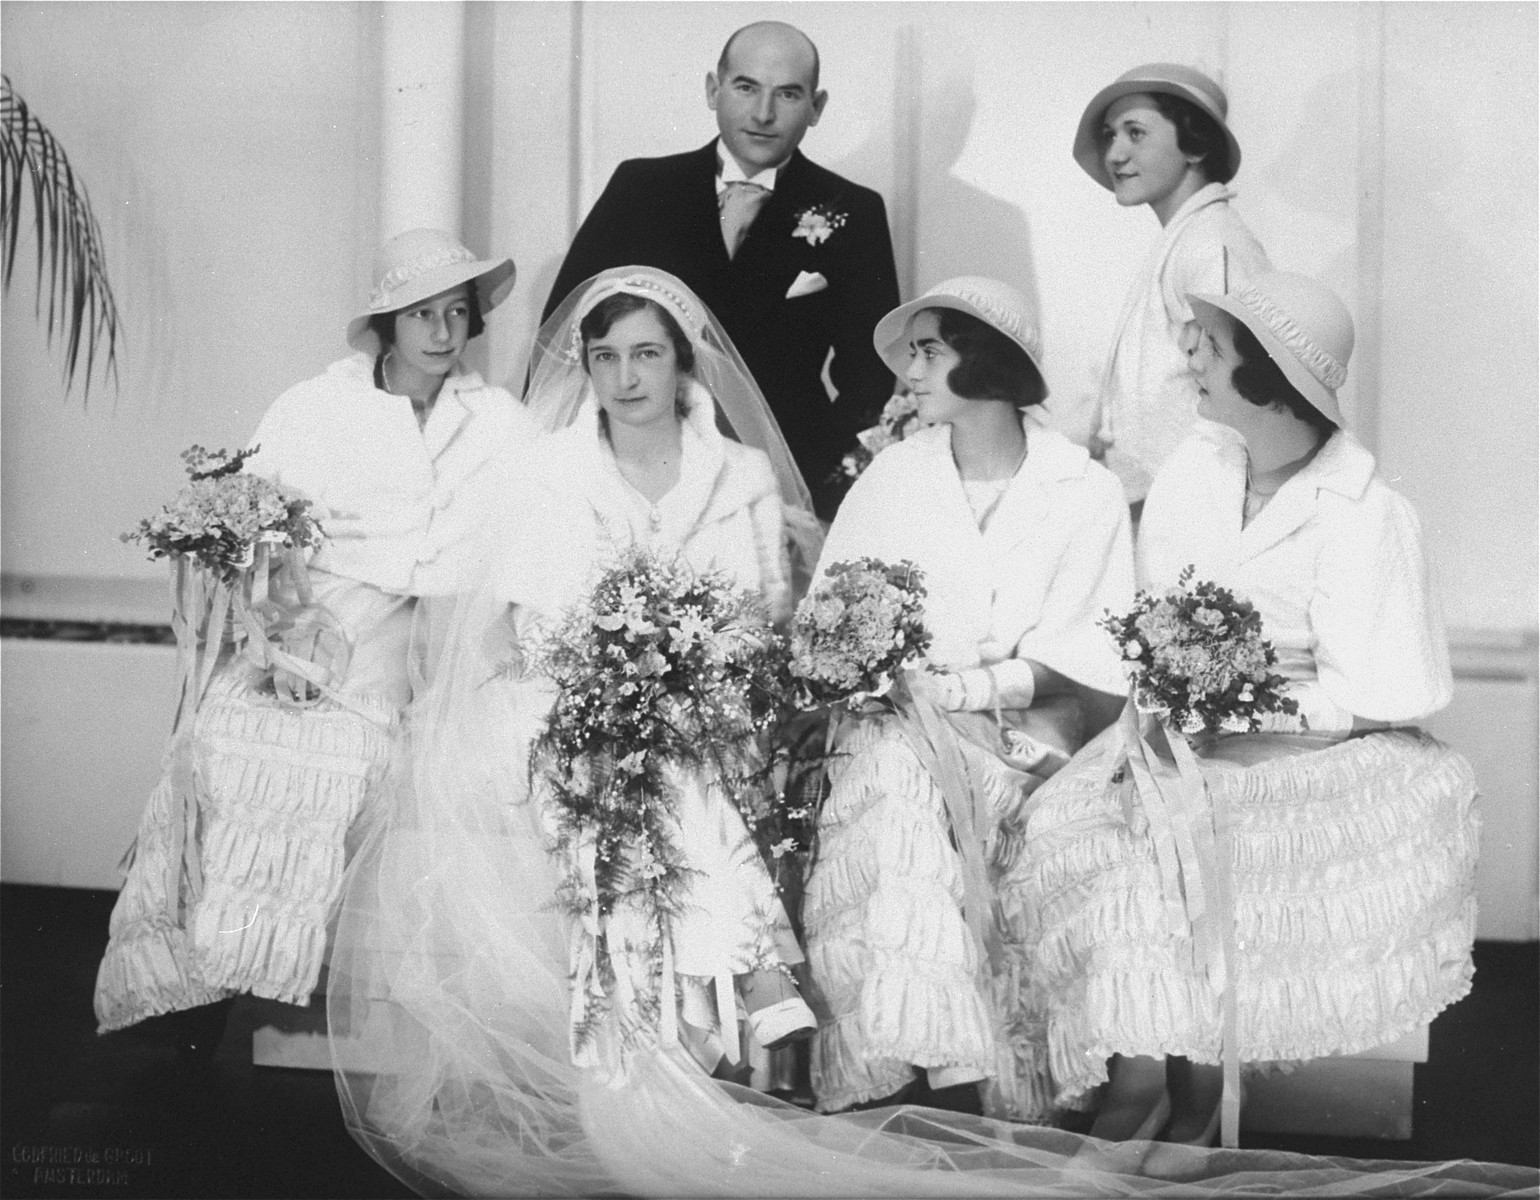 Group portrait of Hilde and Gerrit Verdoner with four bridesmaids on their wedding day.    Pictured from left to right are: Jetty Fontijn, Hilde Verdoner, Letty Stibbe, and Miepje Sluizer; standing behind them is Fanny Schoenfeld.